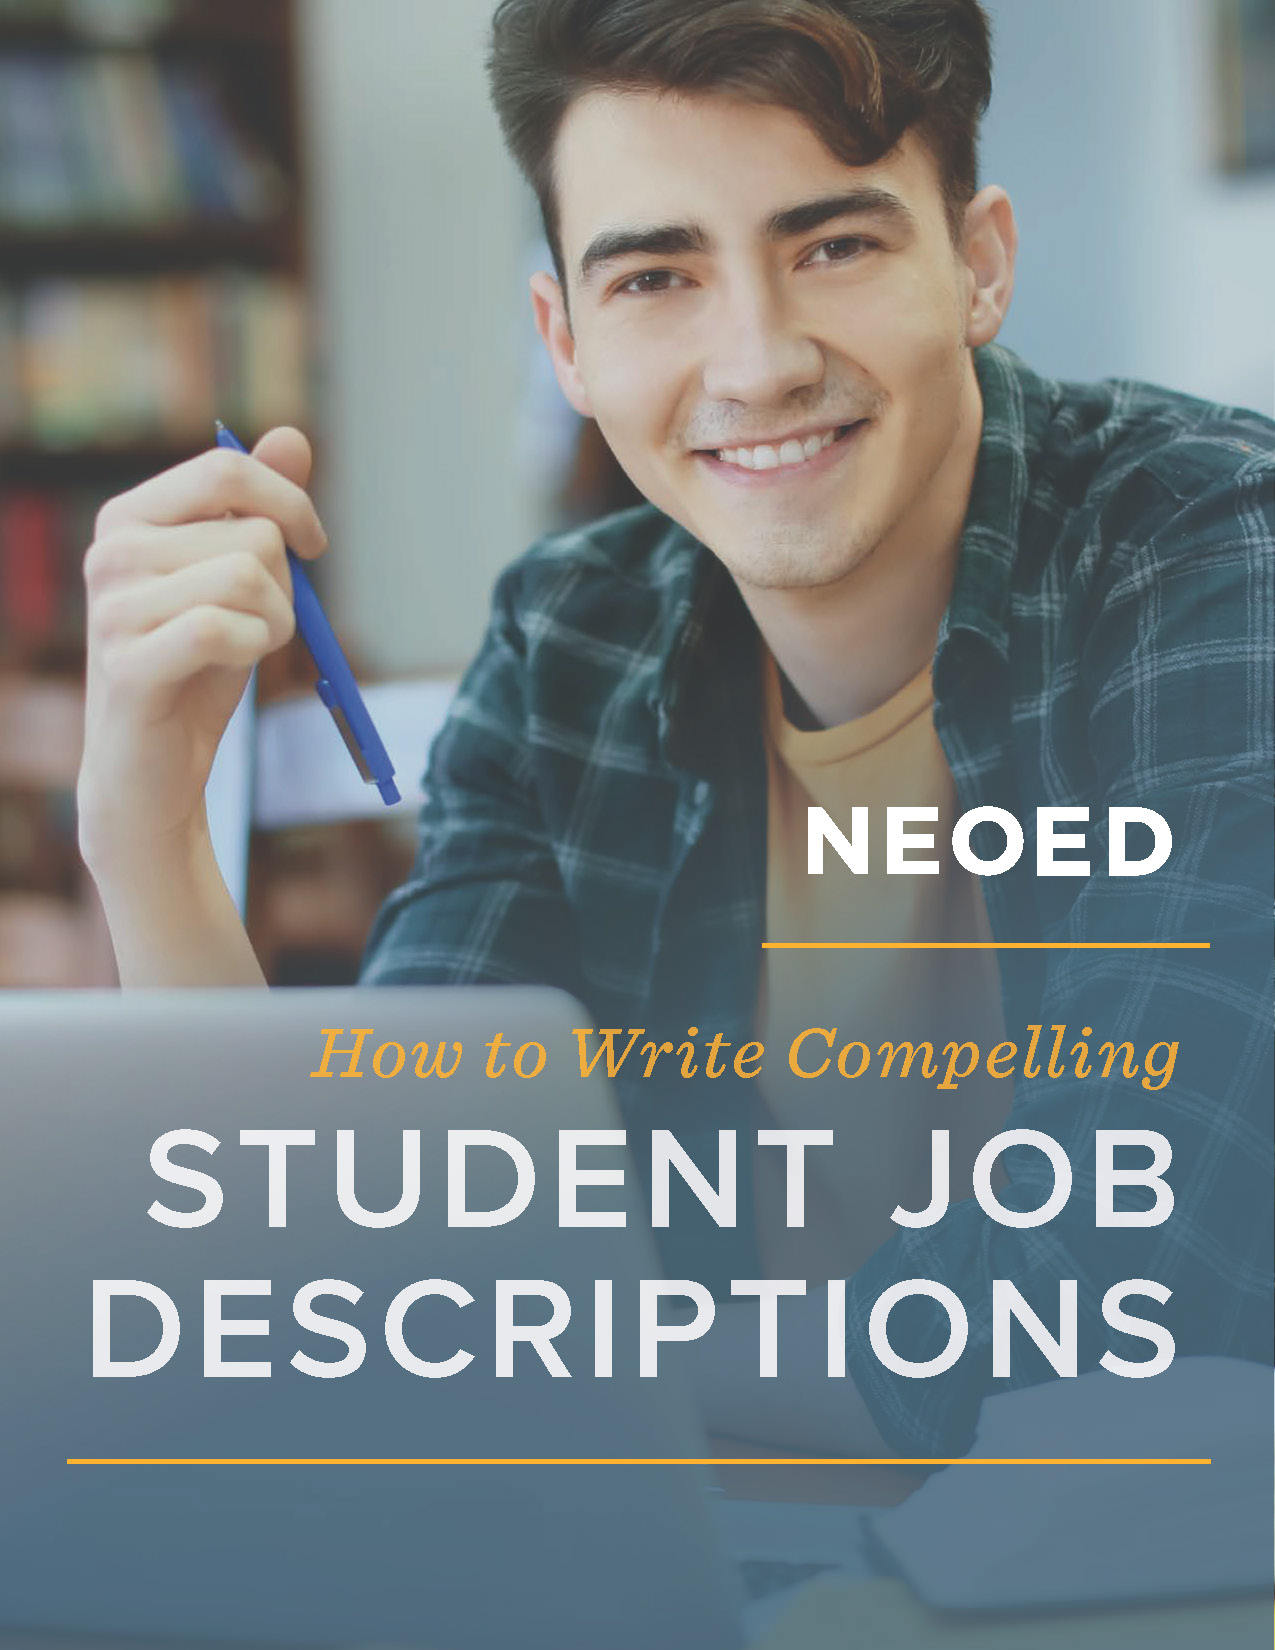 NEOED How to Write Compelling Student Job Descriptions